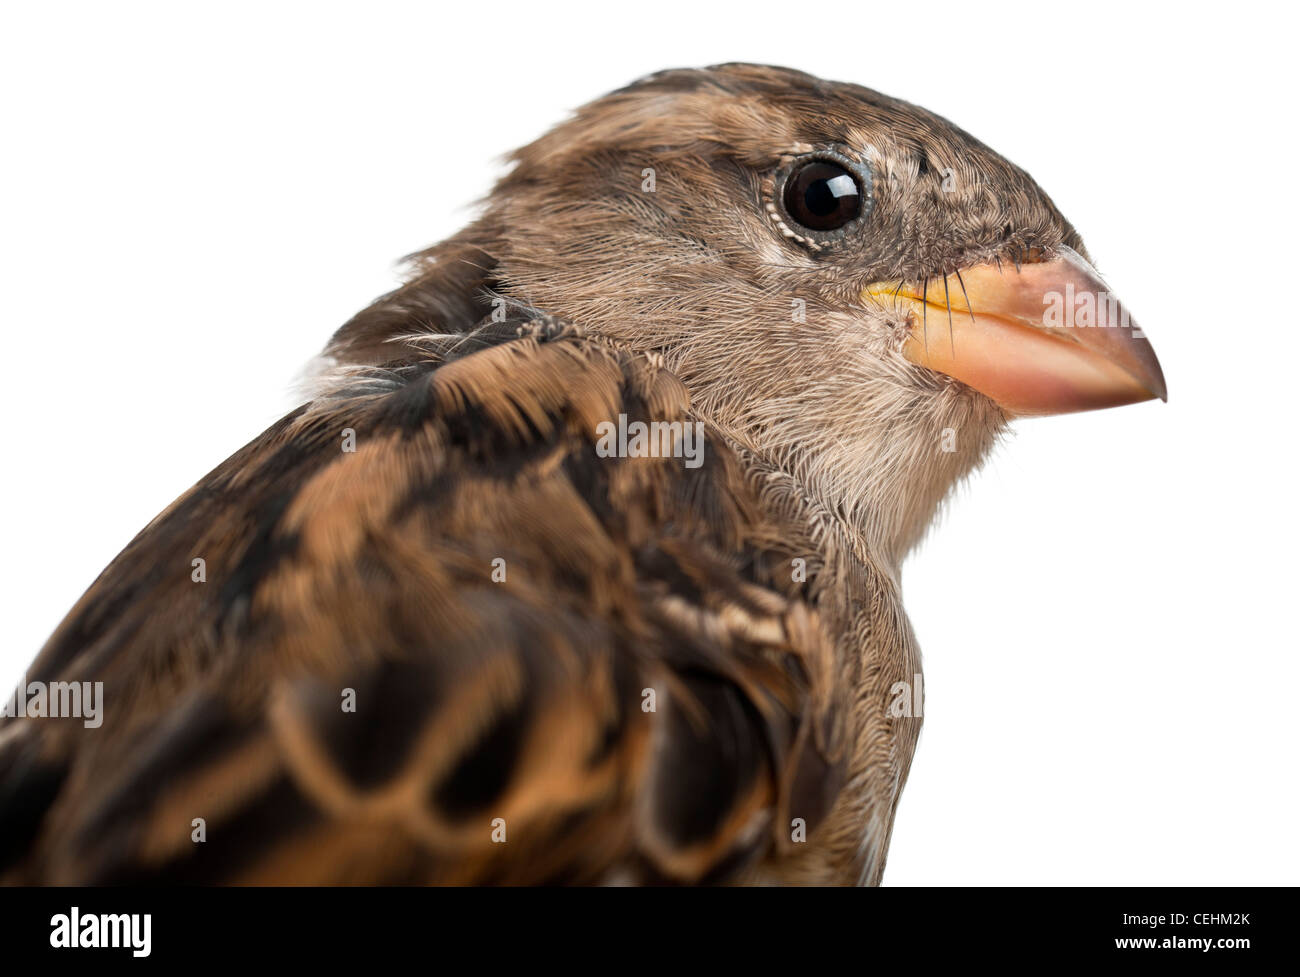 Close-up of female House Sparrow, Passer domesticus, 4 months old, in front of white background - Stock Image